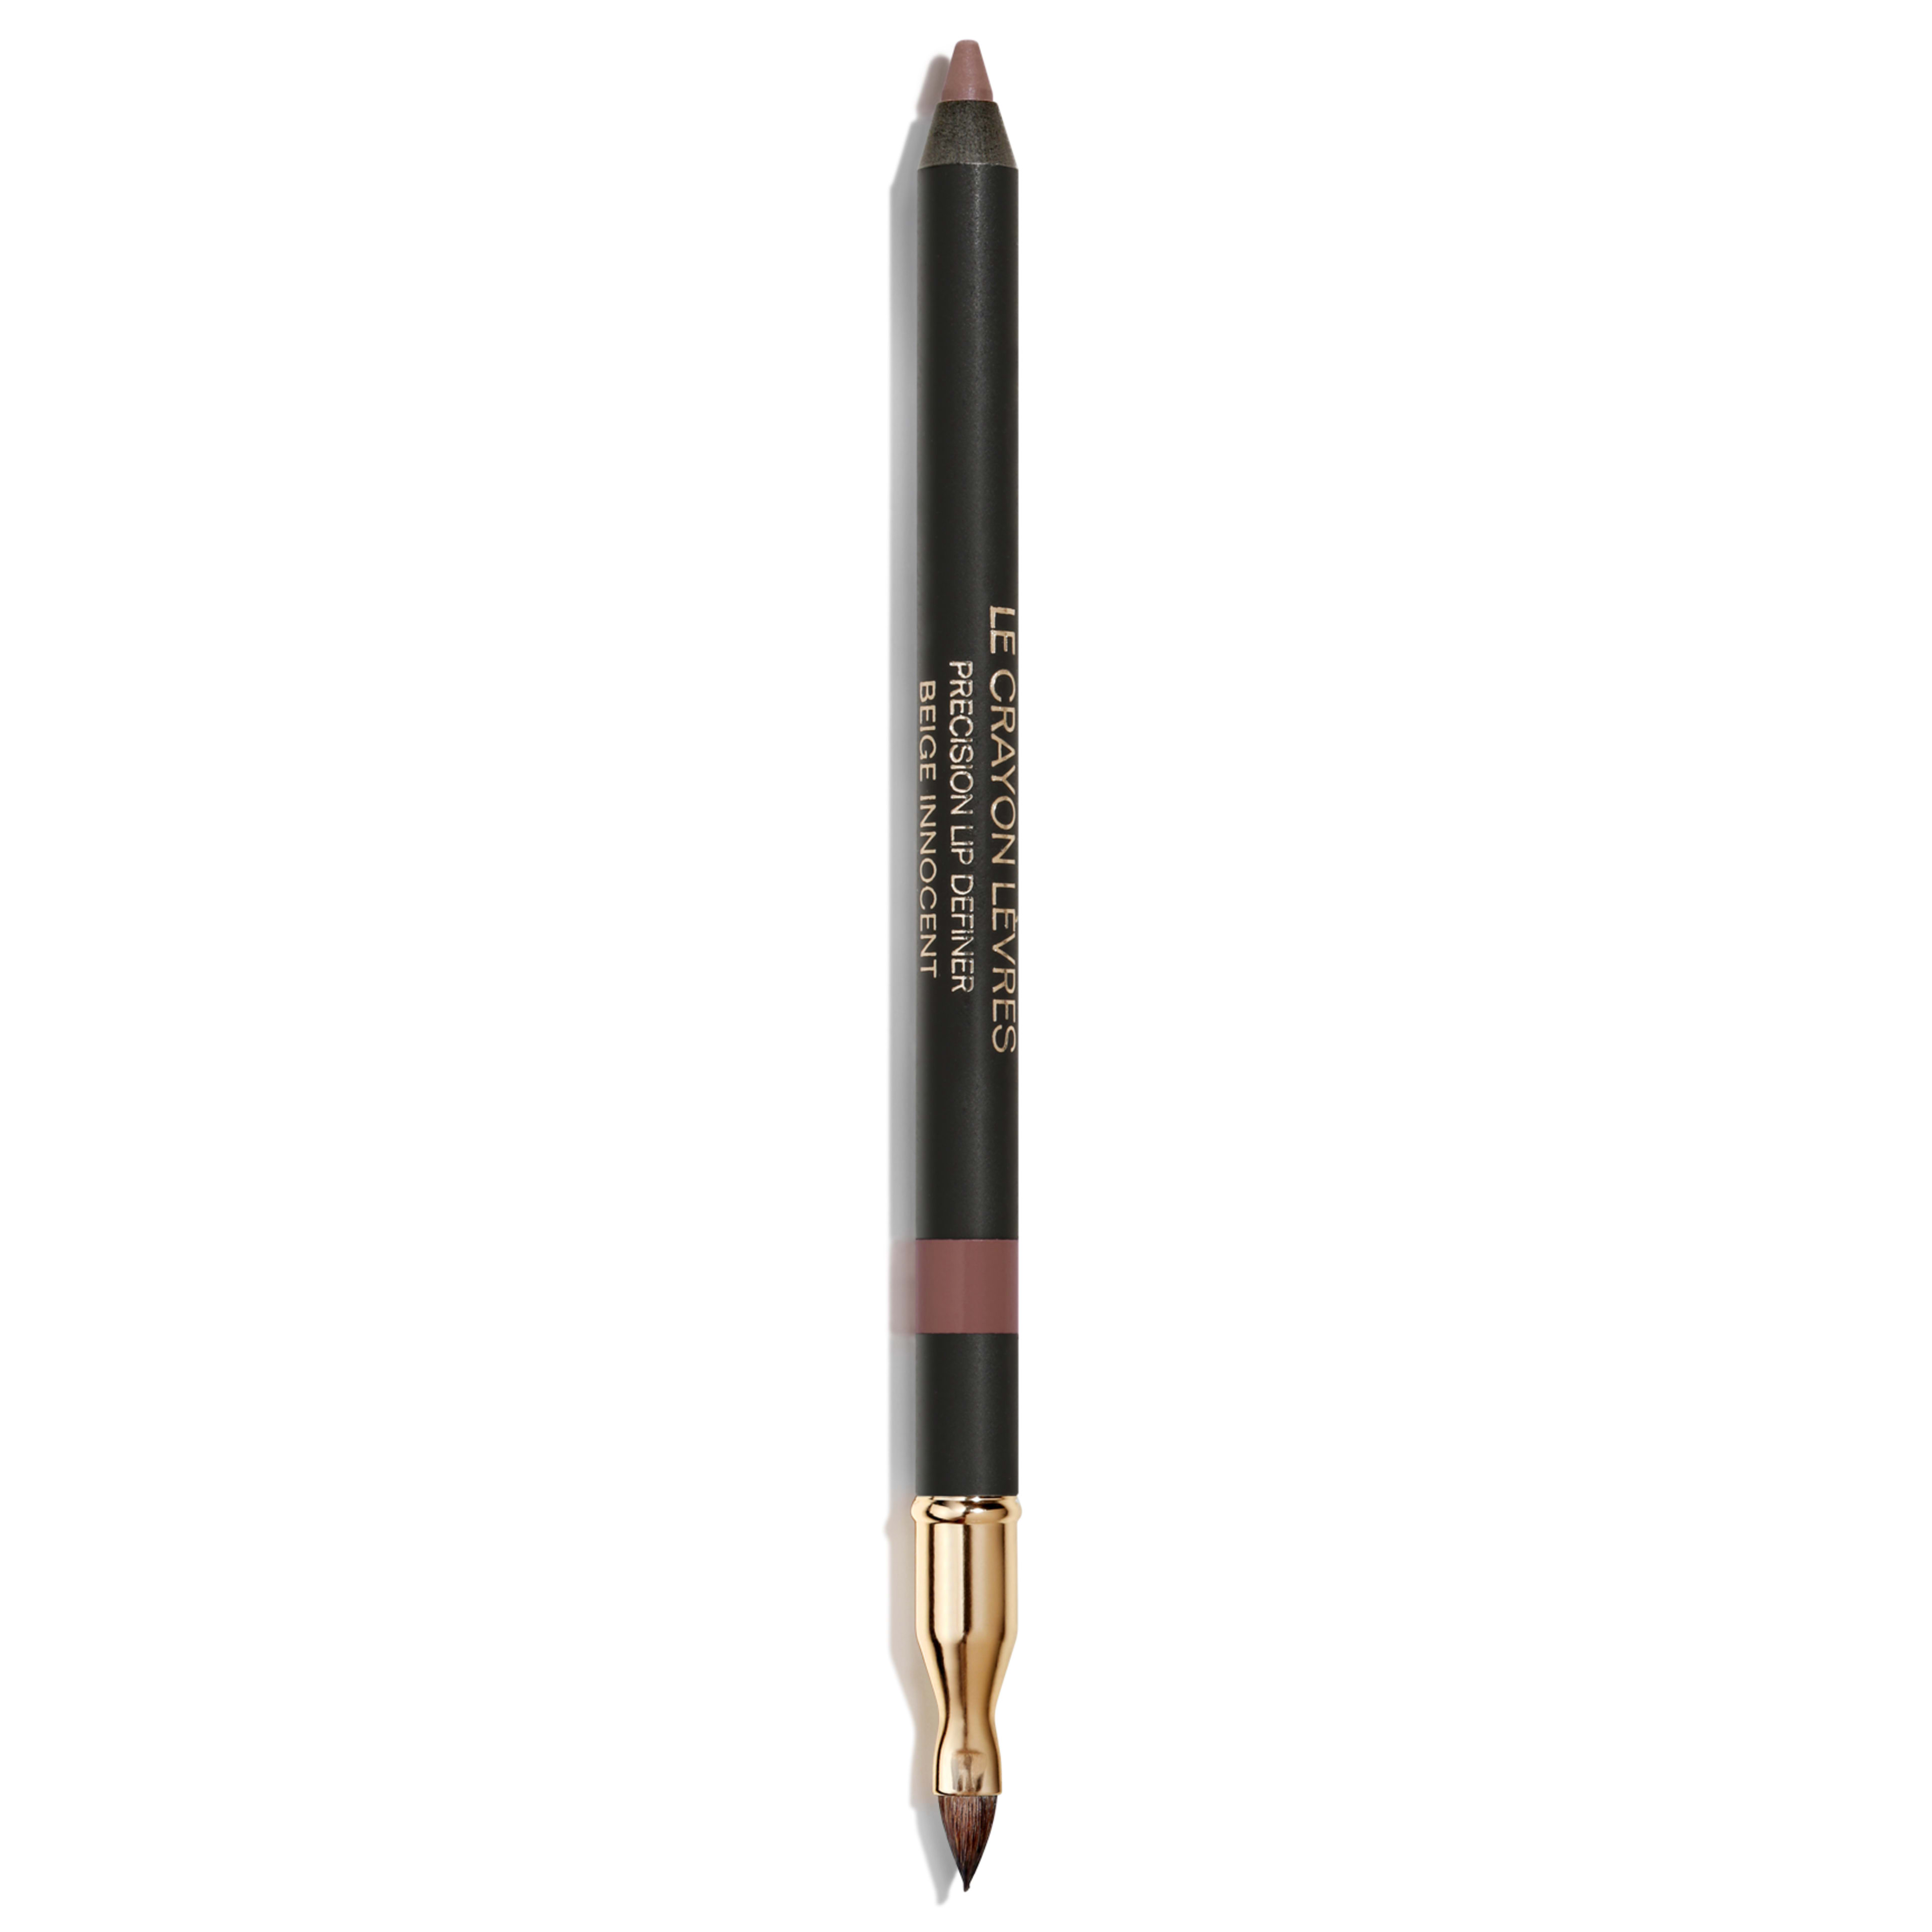 LE CRAYON LÈVRES - makeup - 0.03OZ. - Default view